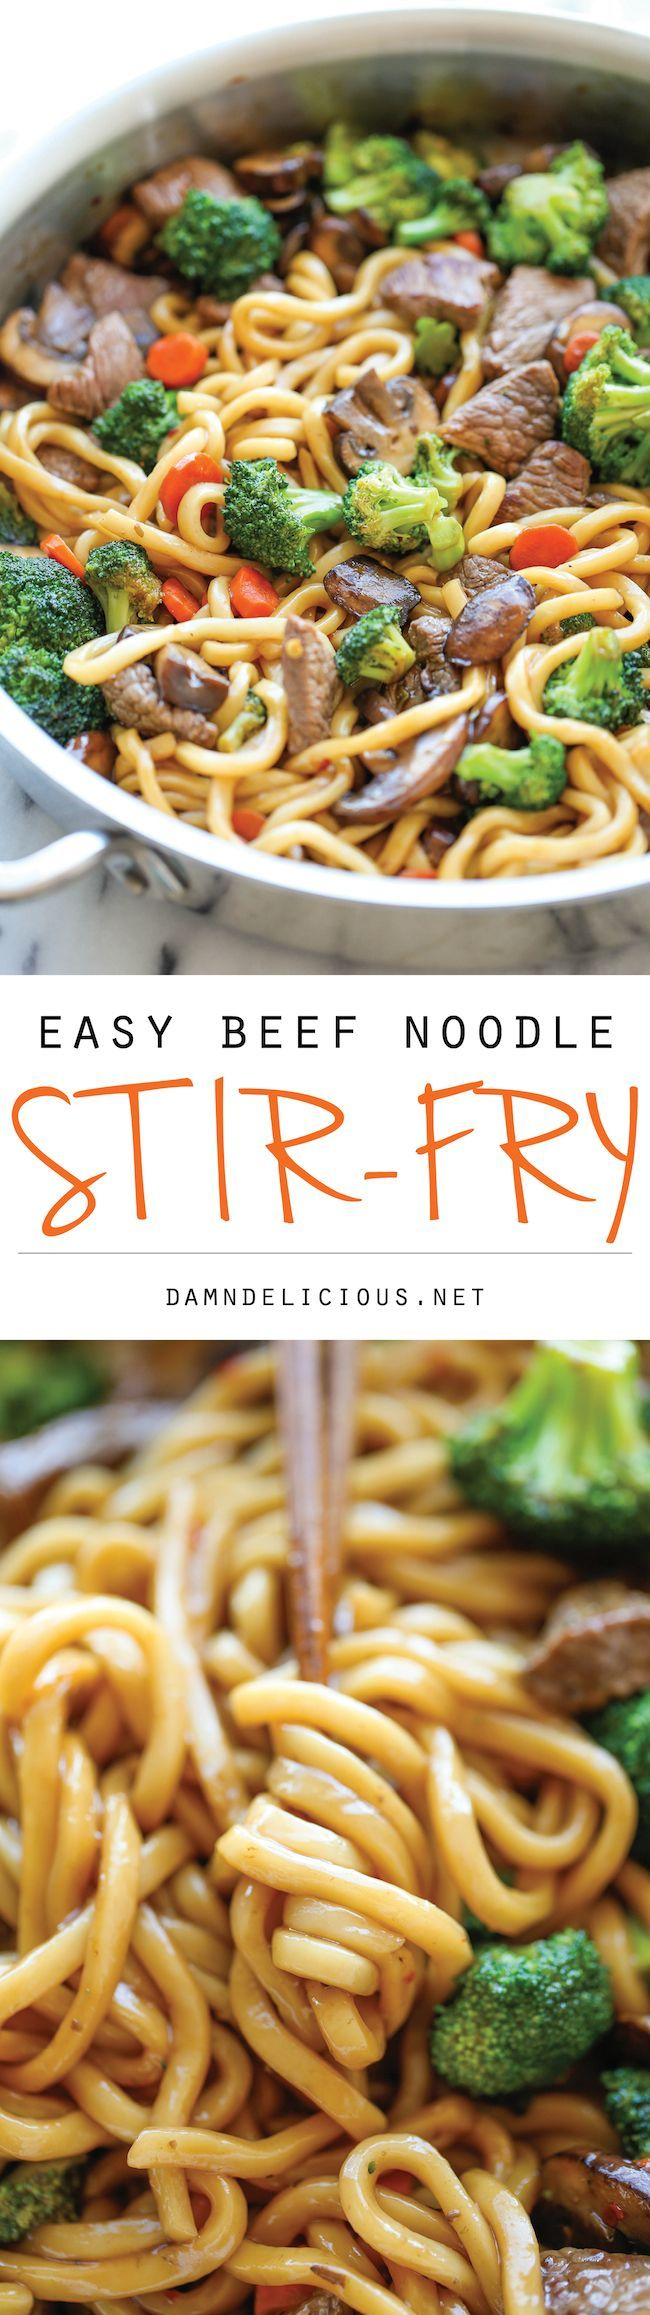 Beef Noodle Stir Fry – The easiest stir fry ever! And you can add in your favorite veggies, making this to be the perfect